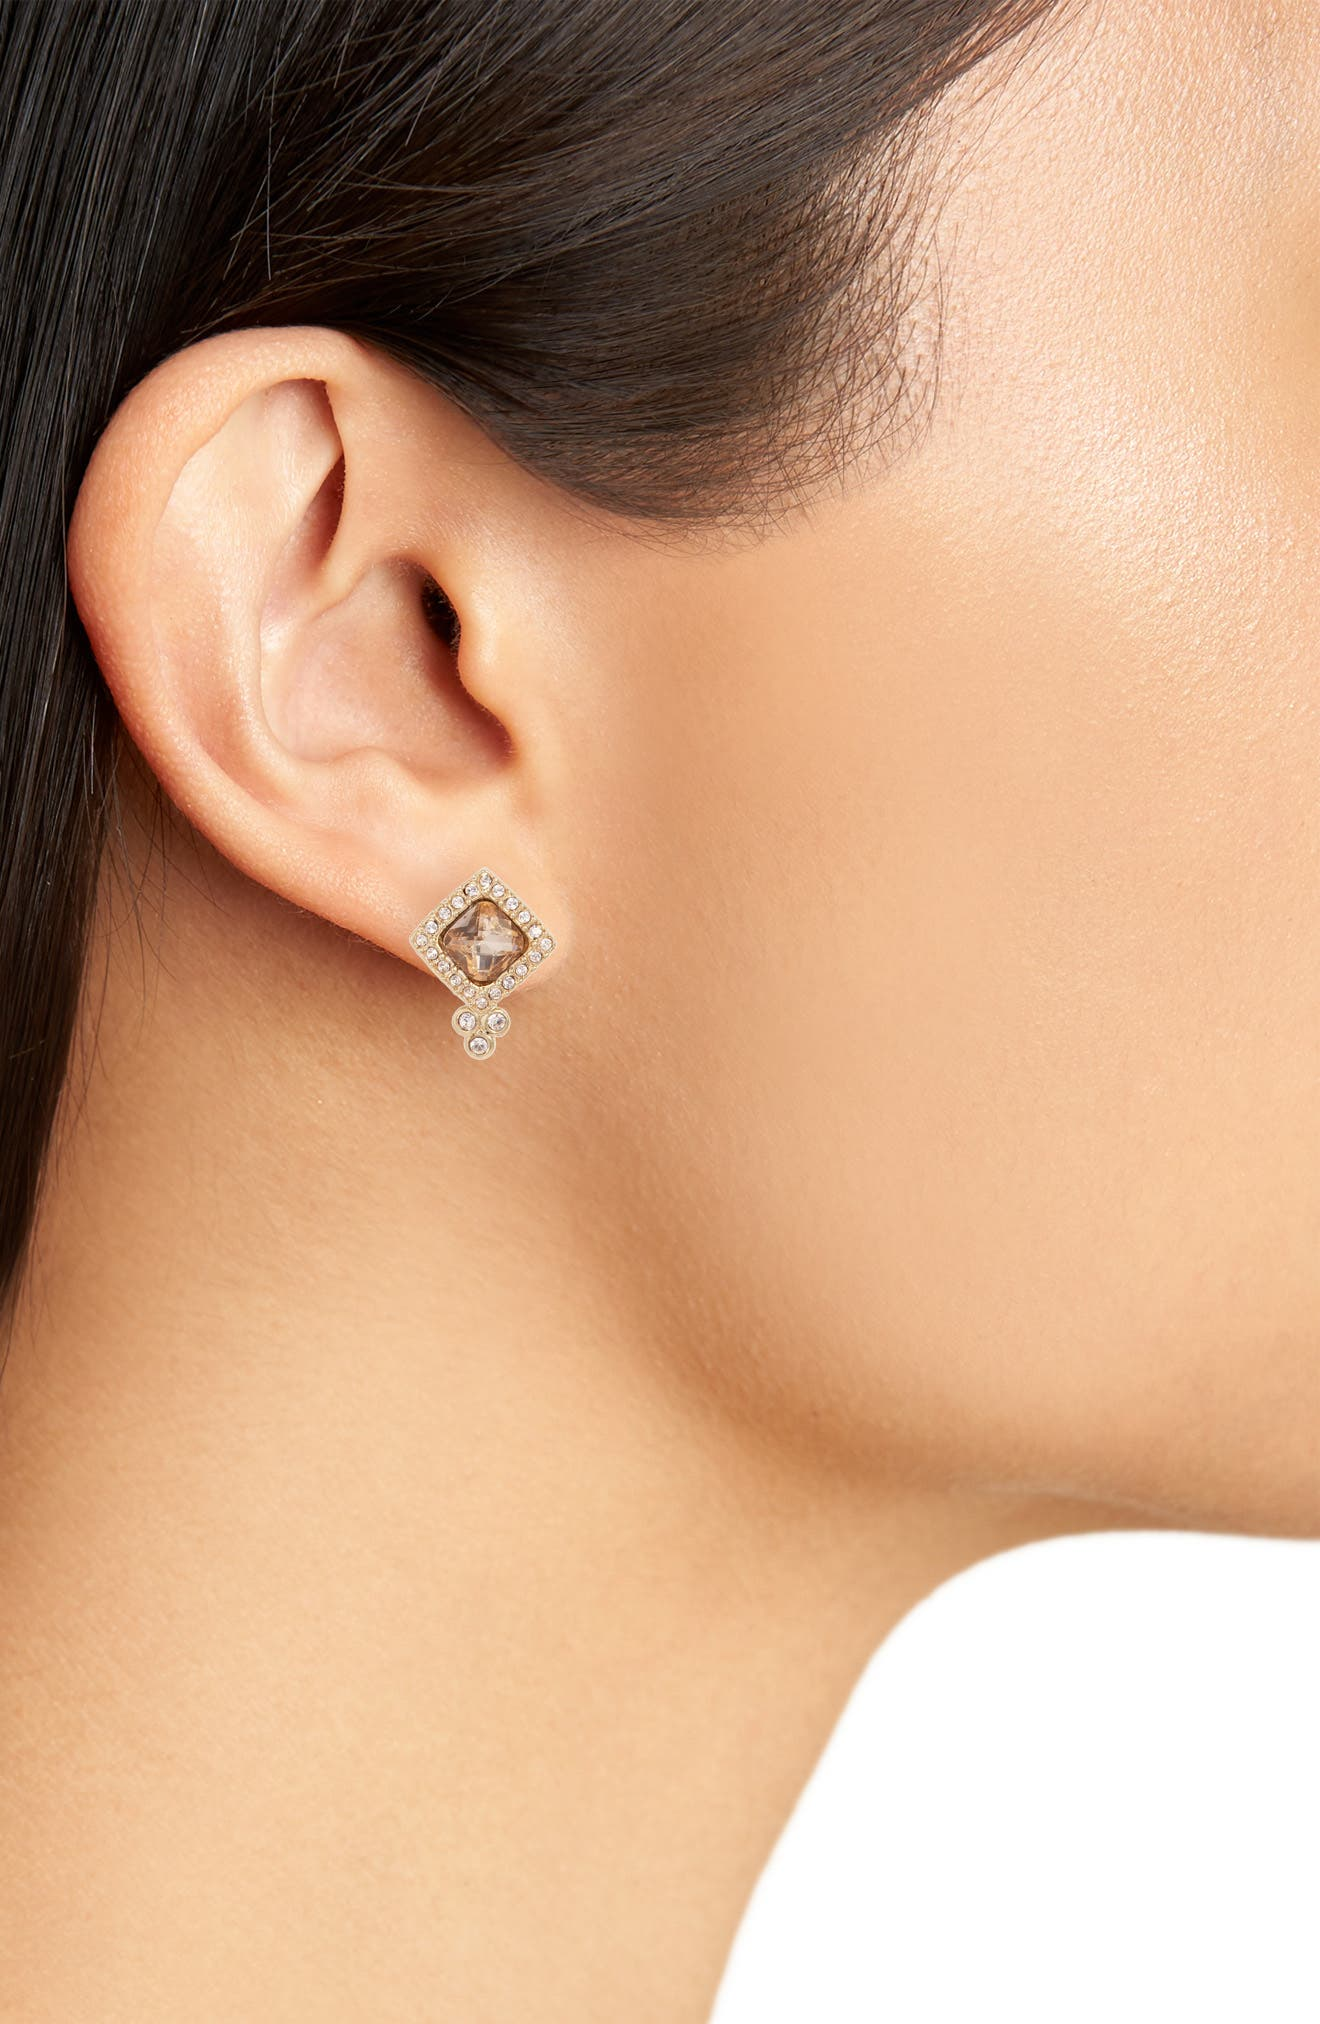 Crystal Stud Earrings,                             Alternate thumbnail 2, color,                             Champagne/ Gold